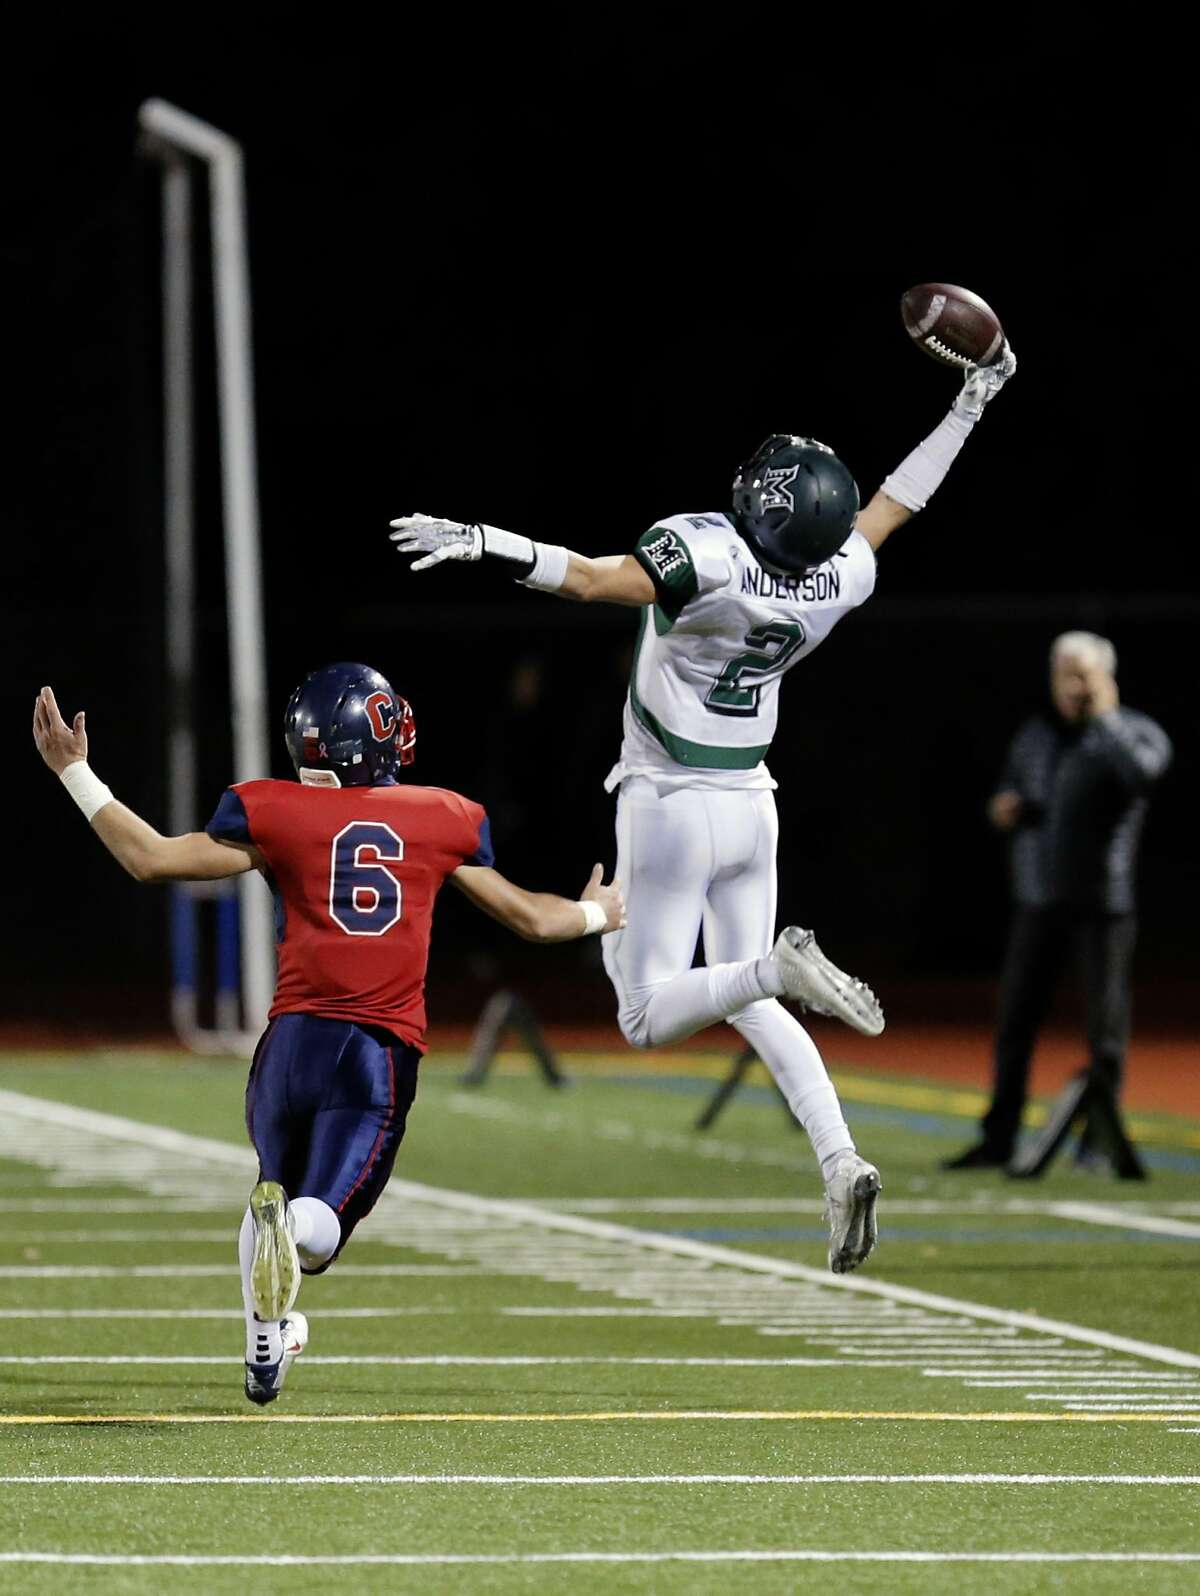 Miramonte receiver Ryan Anderson, 2 can't hold onto a second quarter pass as he is covered by Campolindo's Devin Regan, 6 as Campolindo Cougars take on the the Miramonte Matadors in Moraga, Calif. on Fri. October 30, 2015.